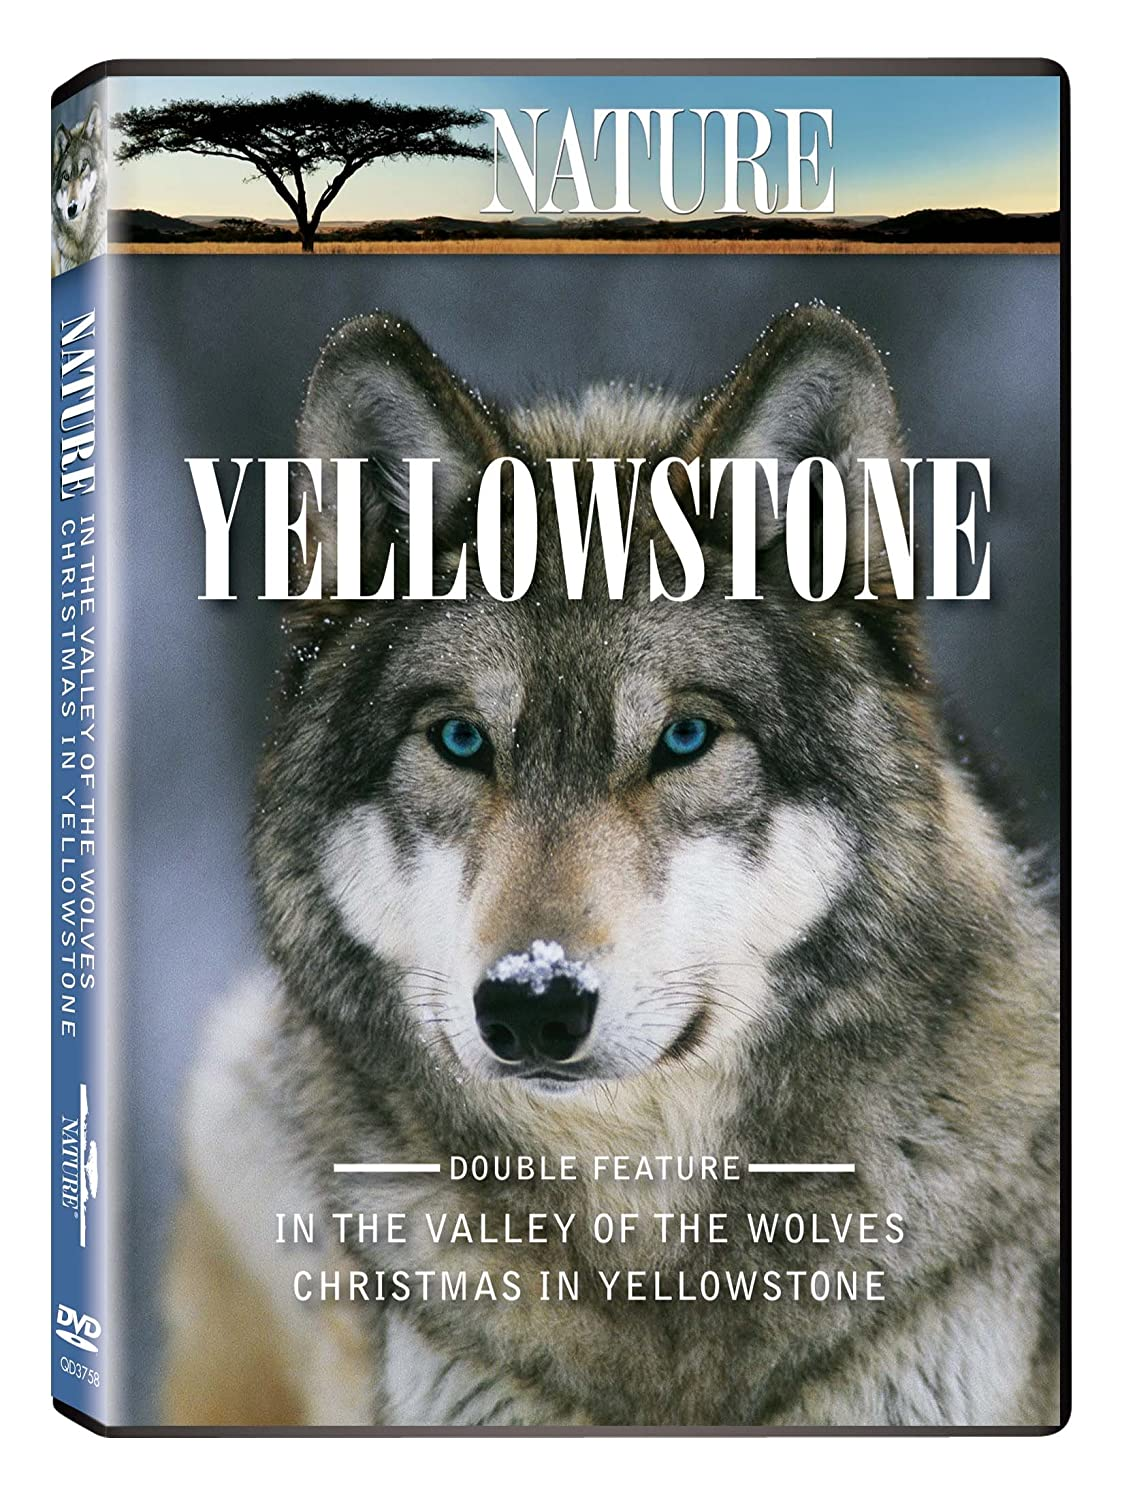 Nature: Yellowstone (In the Valley of the Wolves and Christmas in Yellowstone)